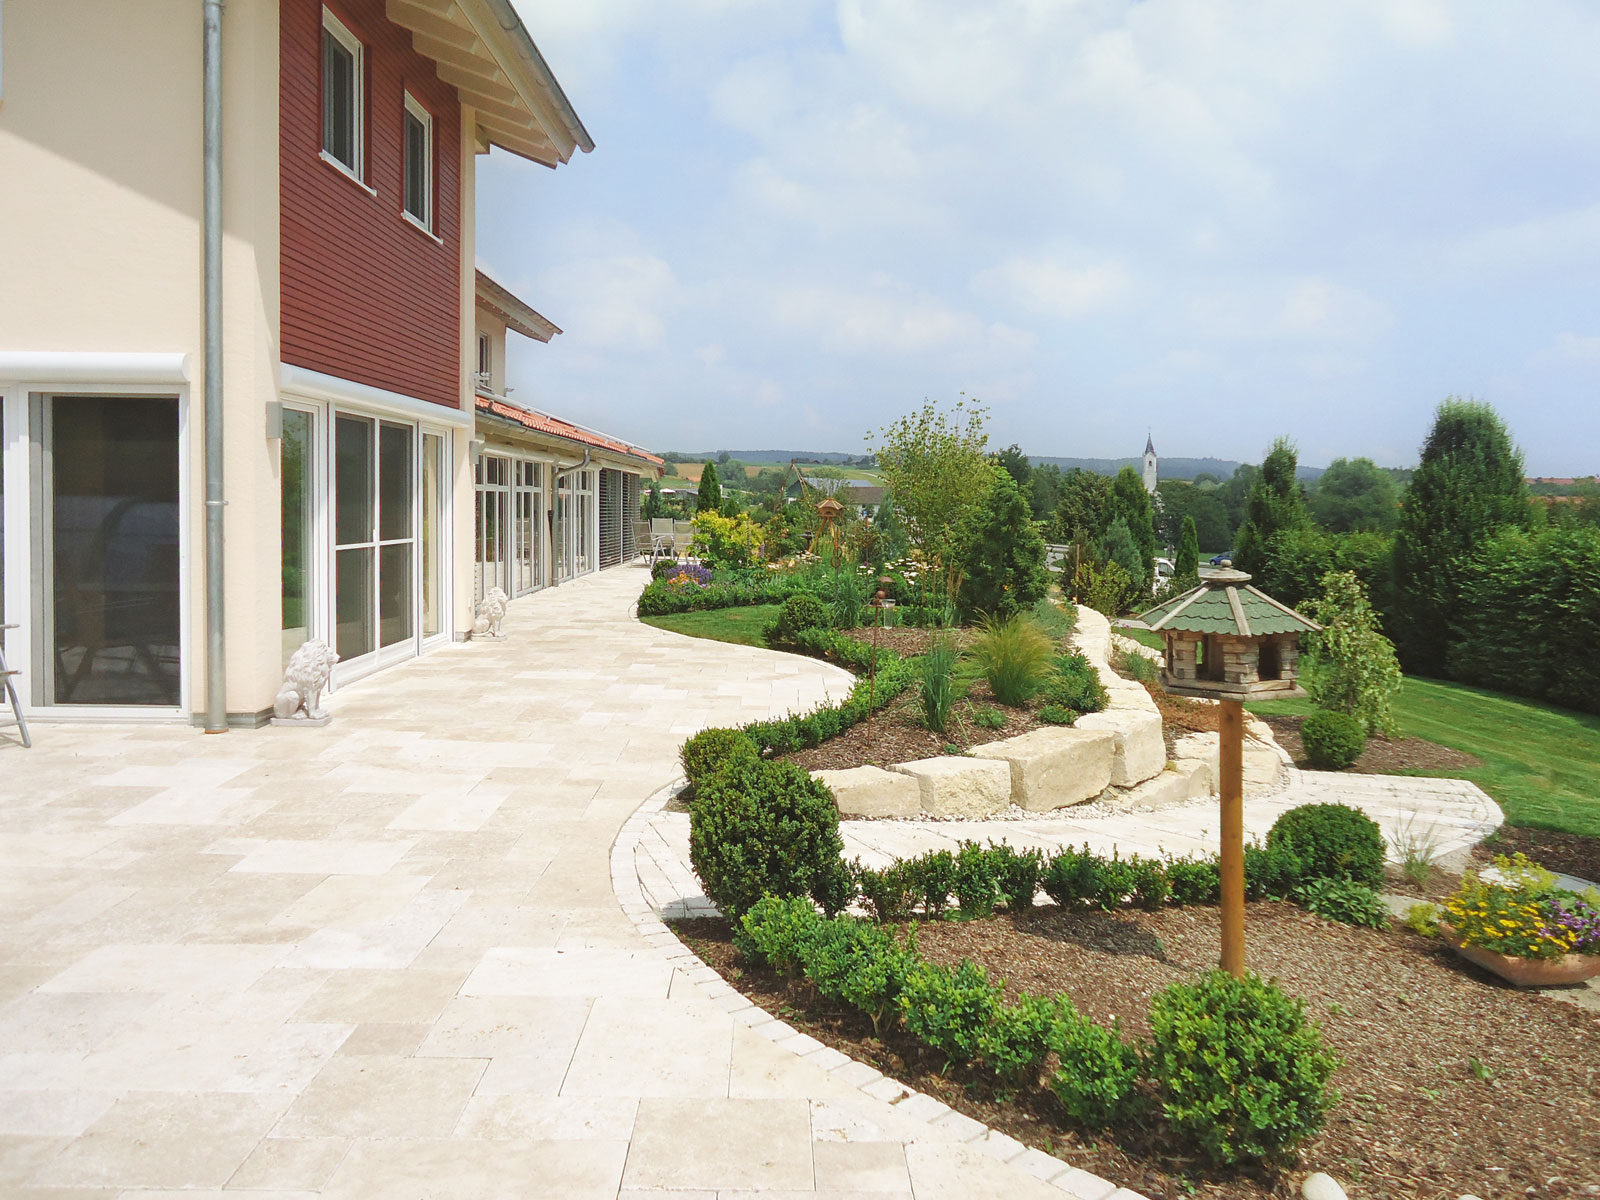 Exclusive Terrasse aus Travertin Naturstein